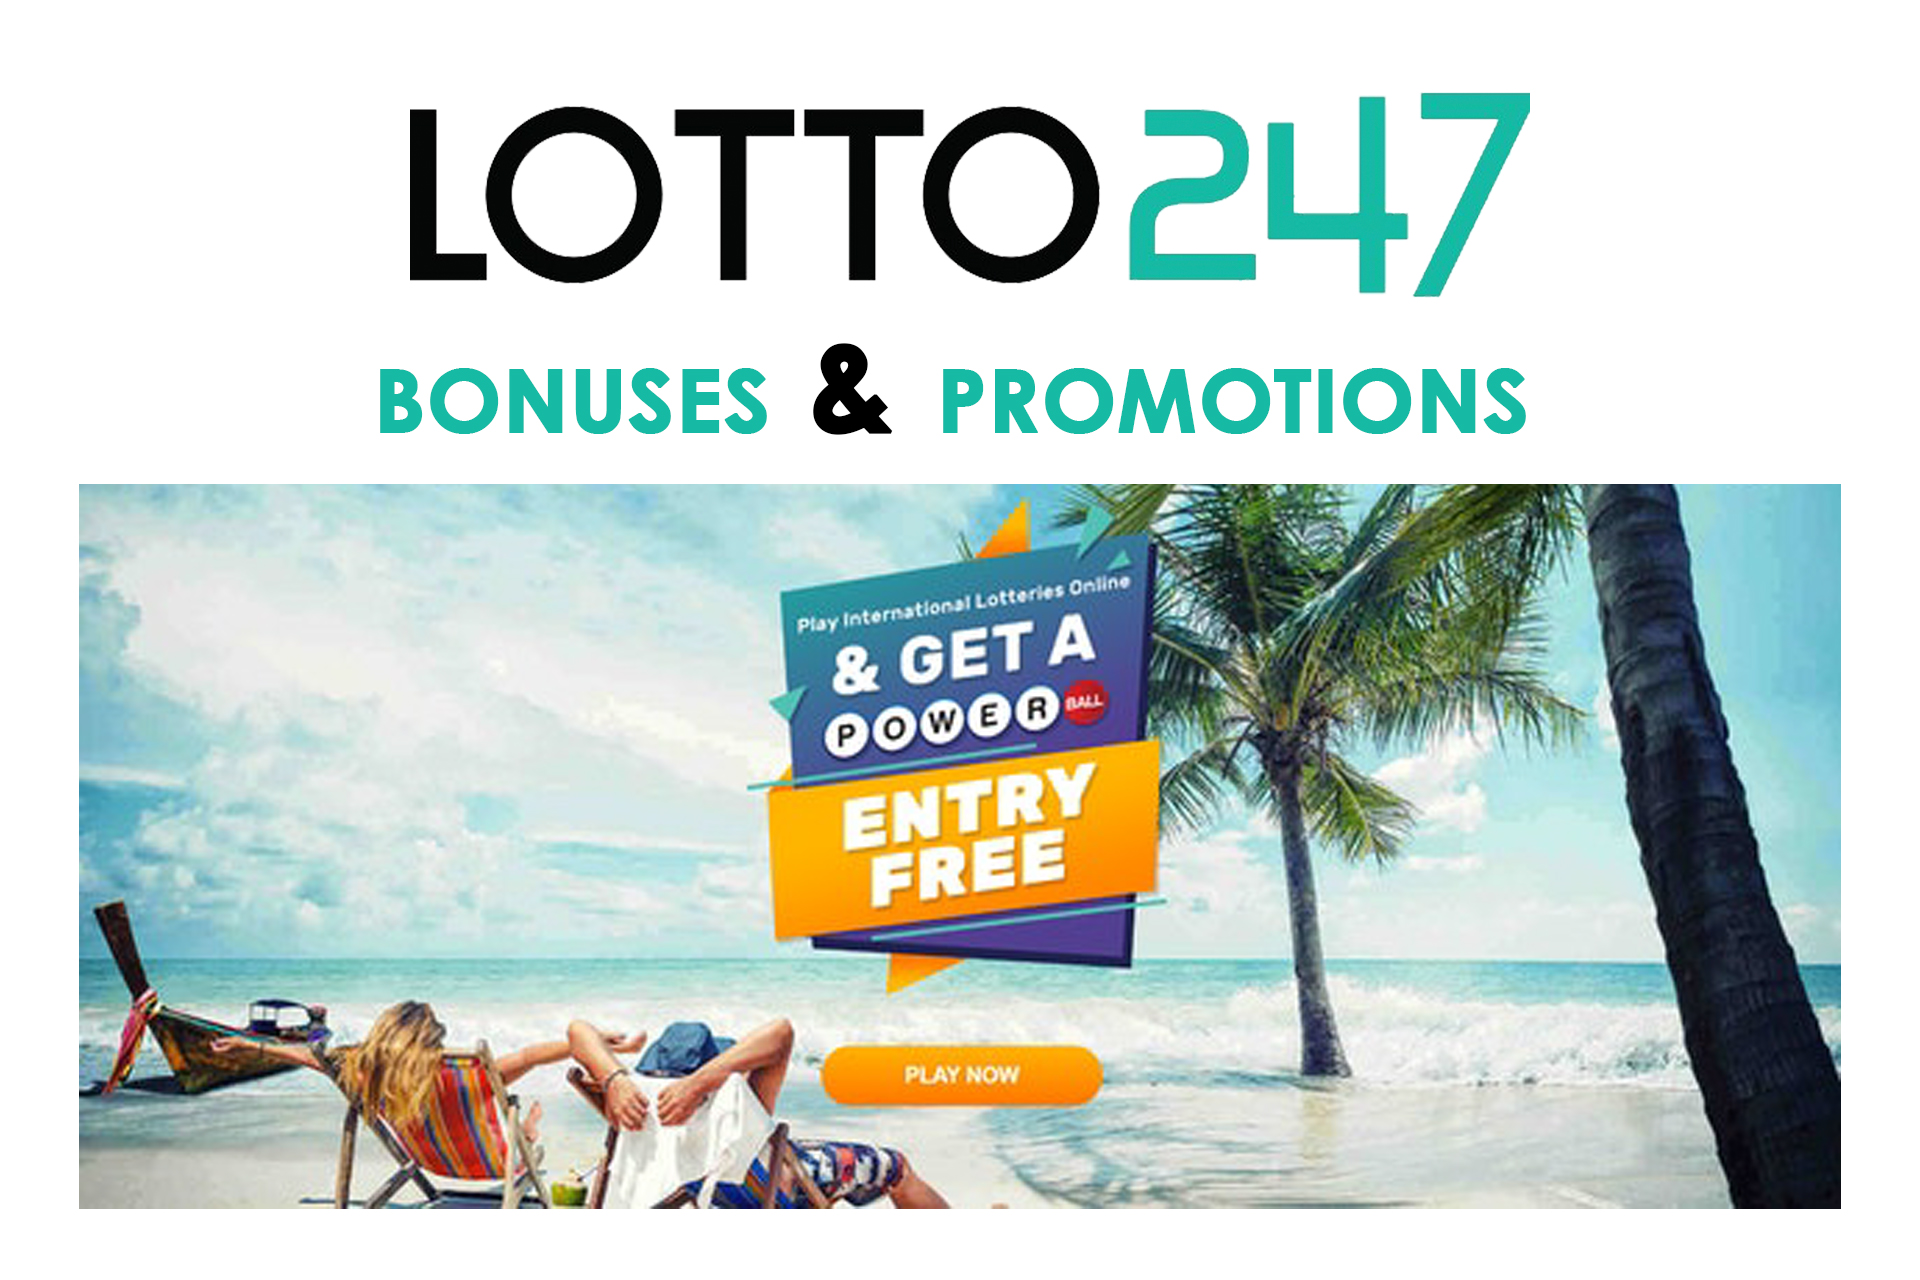 Pay attention to welcome bonuses and promotions in order to win more money,